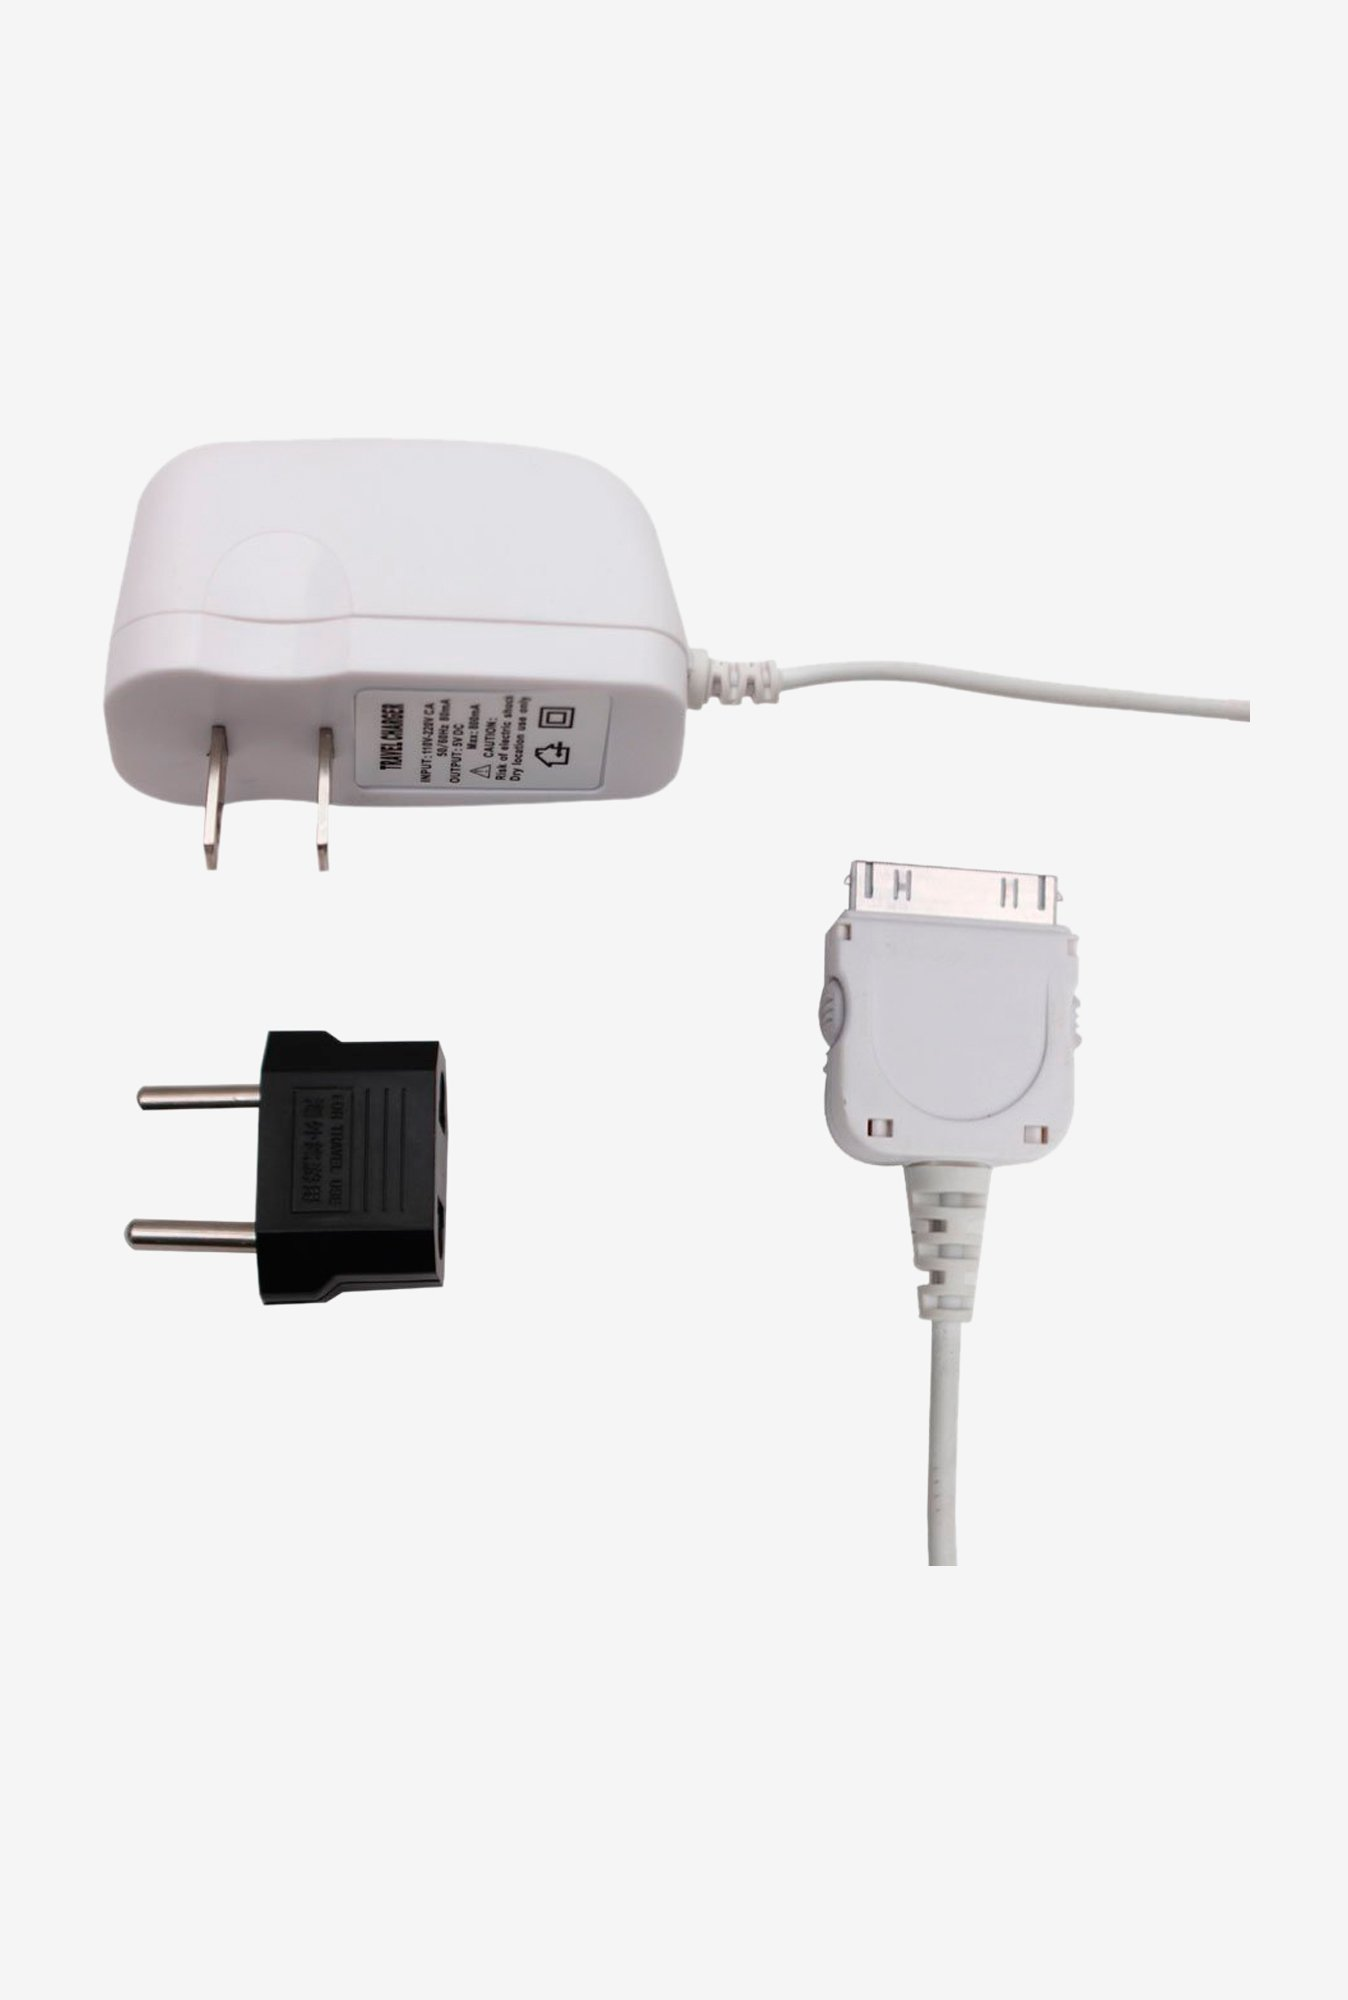 Callmate 1AMP FCIPAD2WH Charger White for iPad 2/3/4